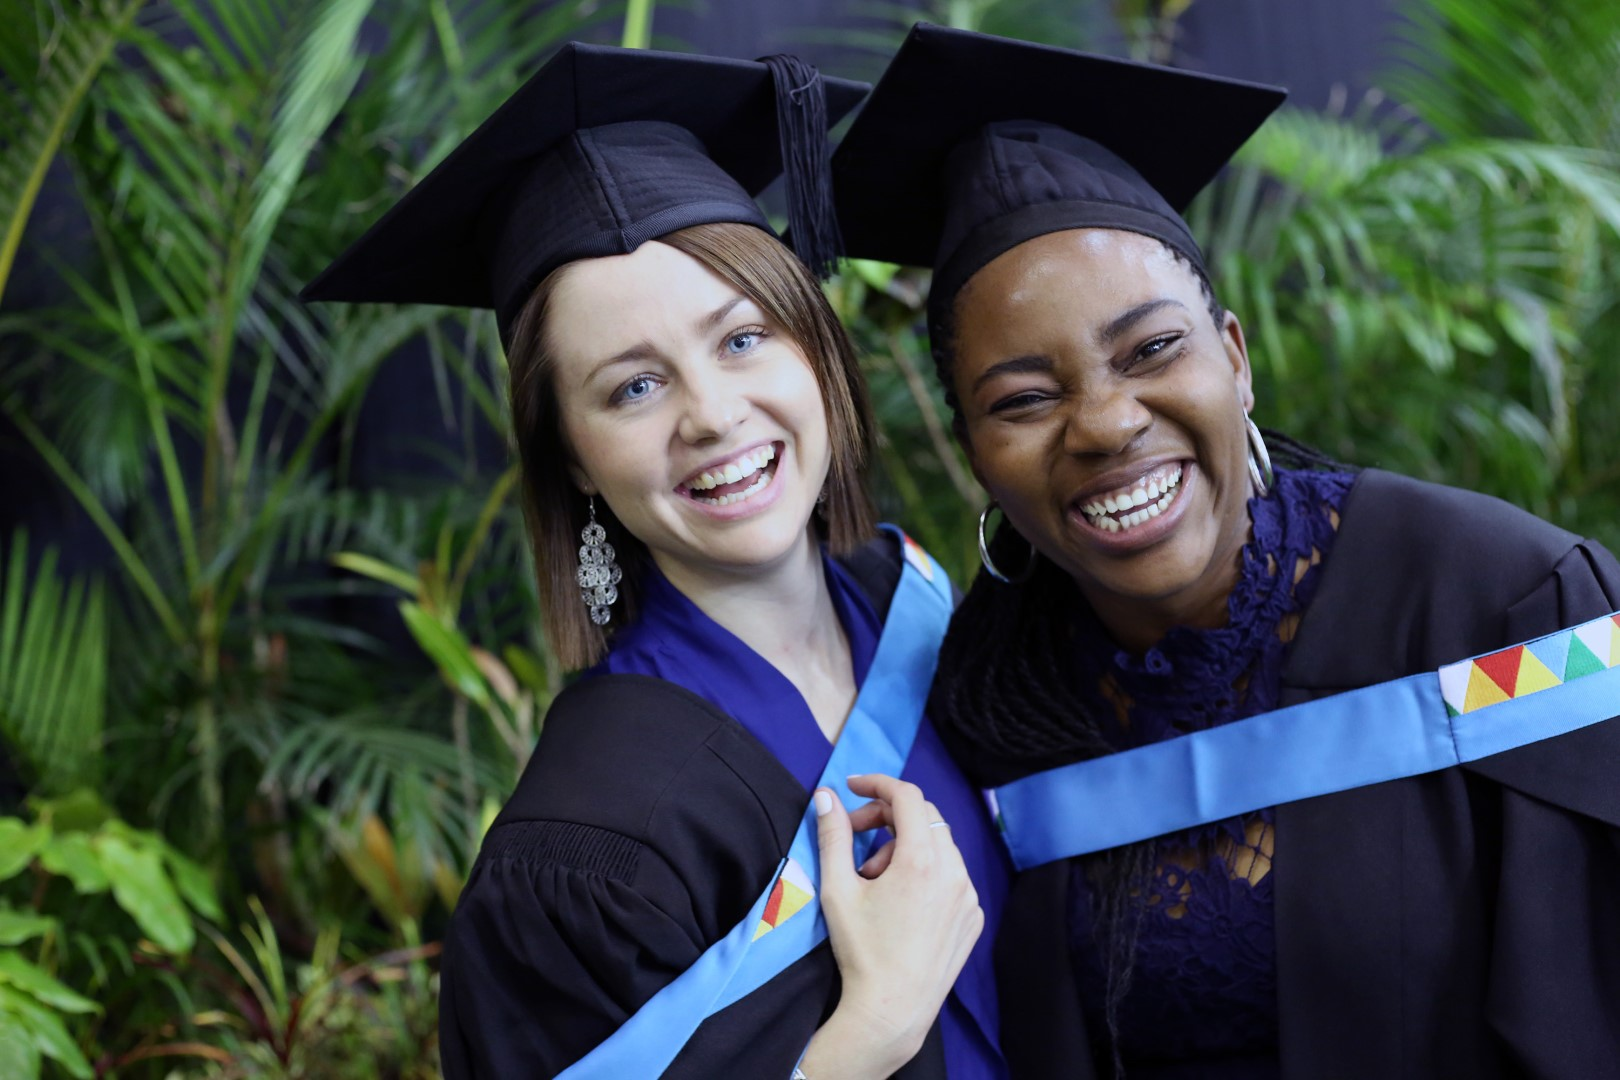 Masters of Social Sciences graduates Ms Claire Mondlana and Ms Sarah Jane O'Connell.